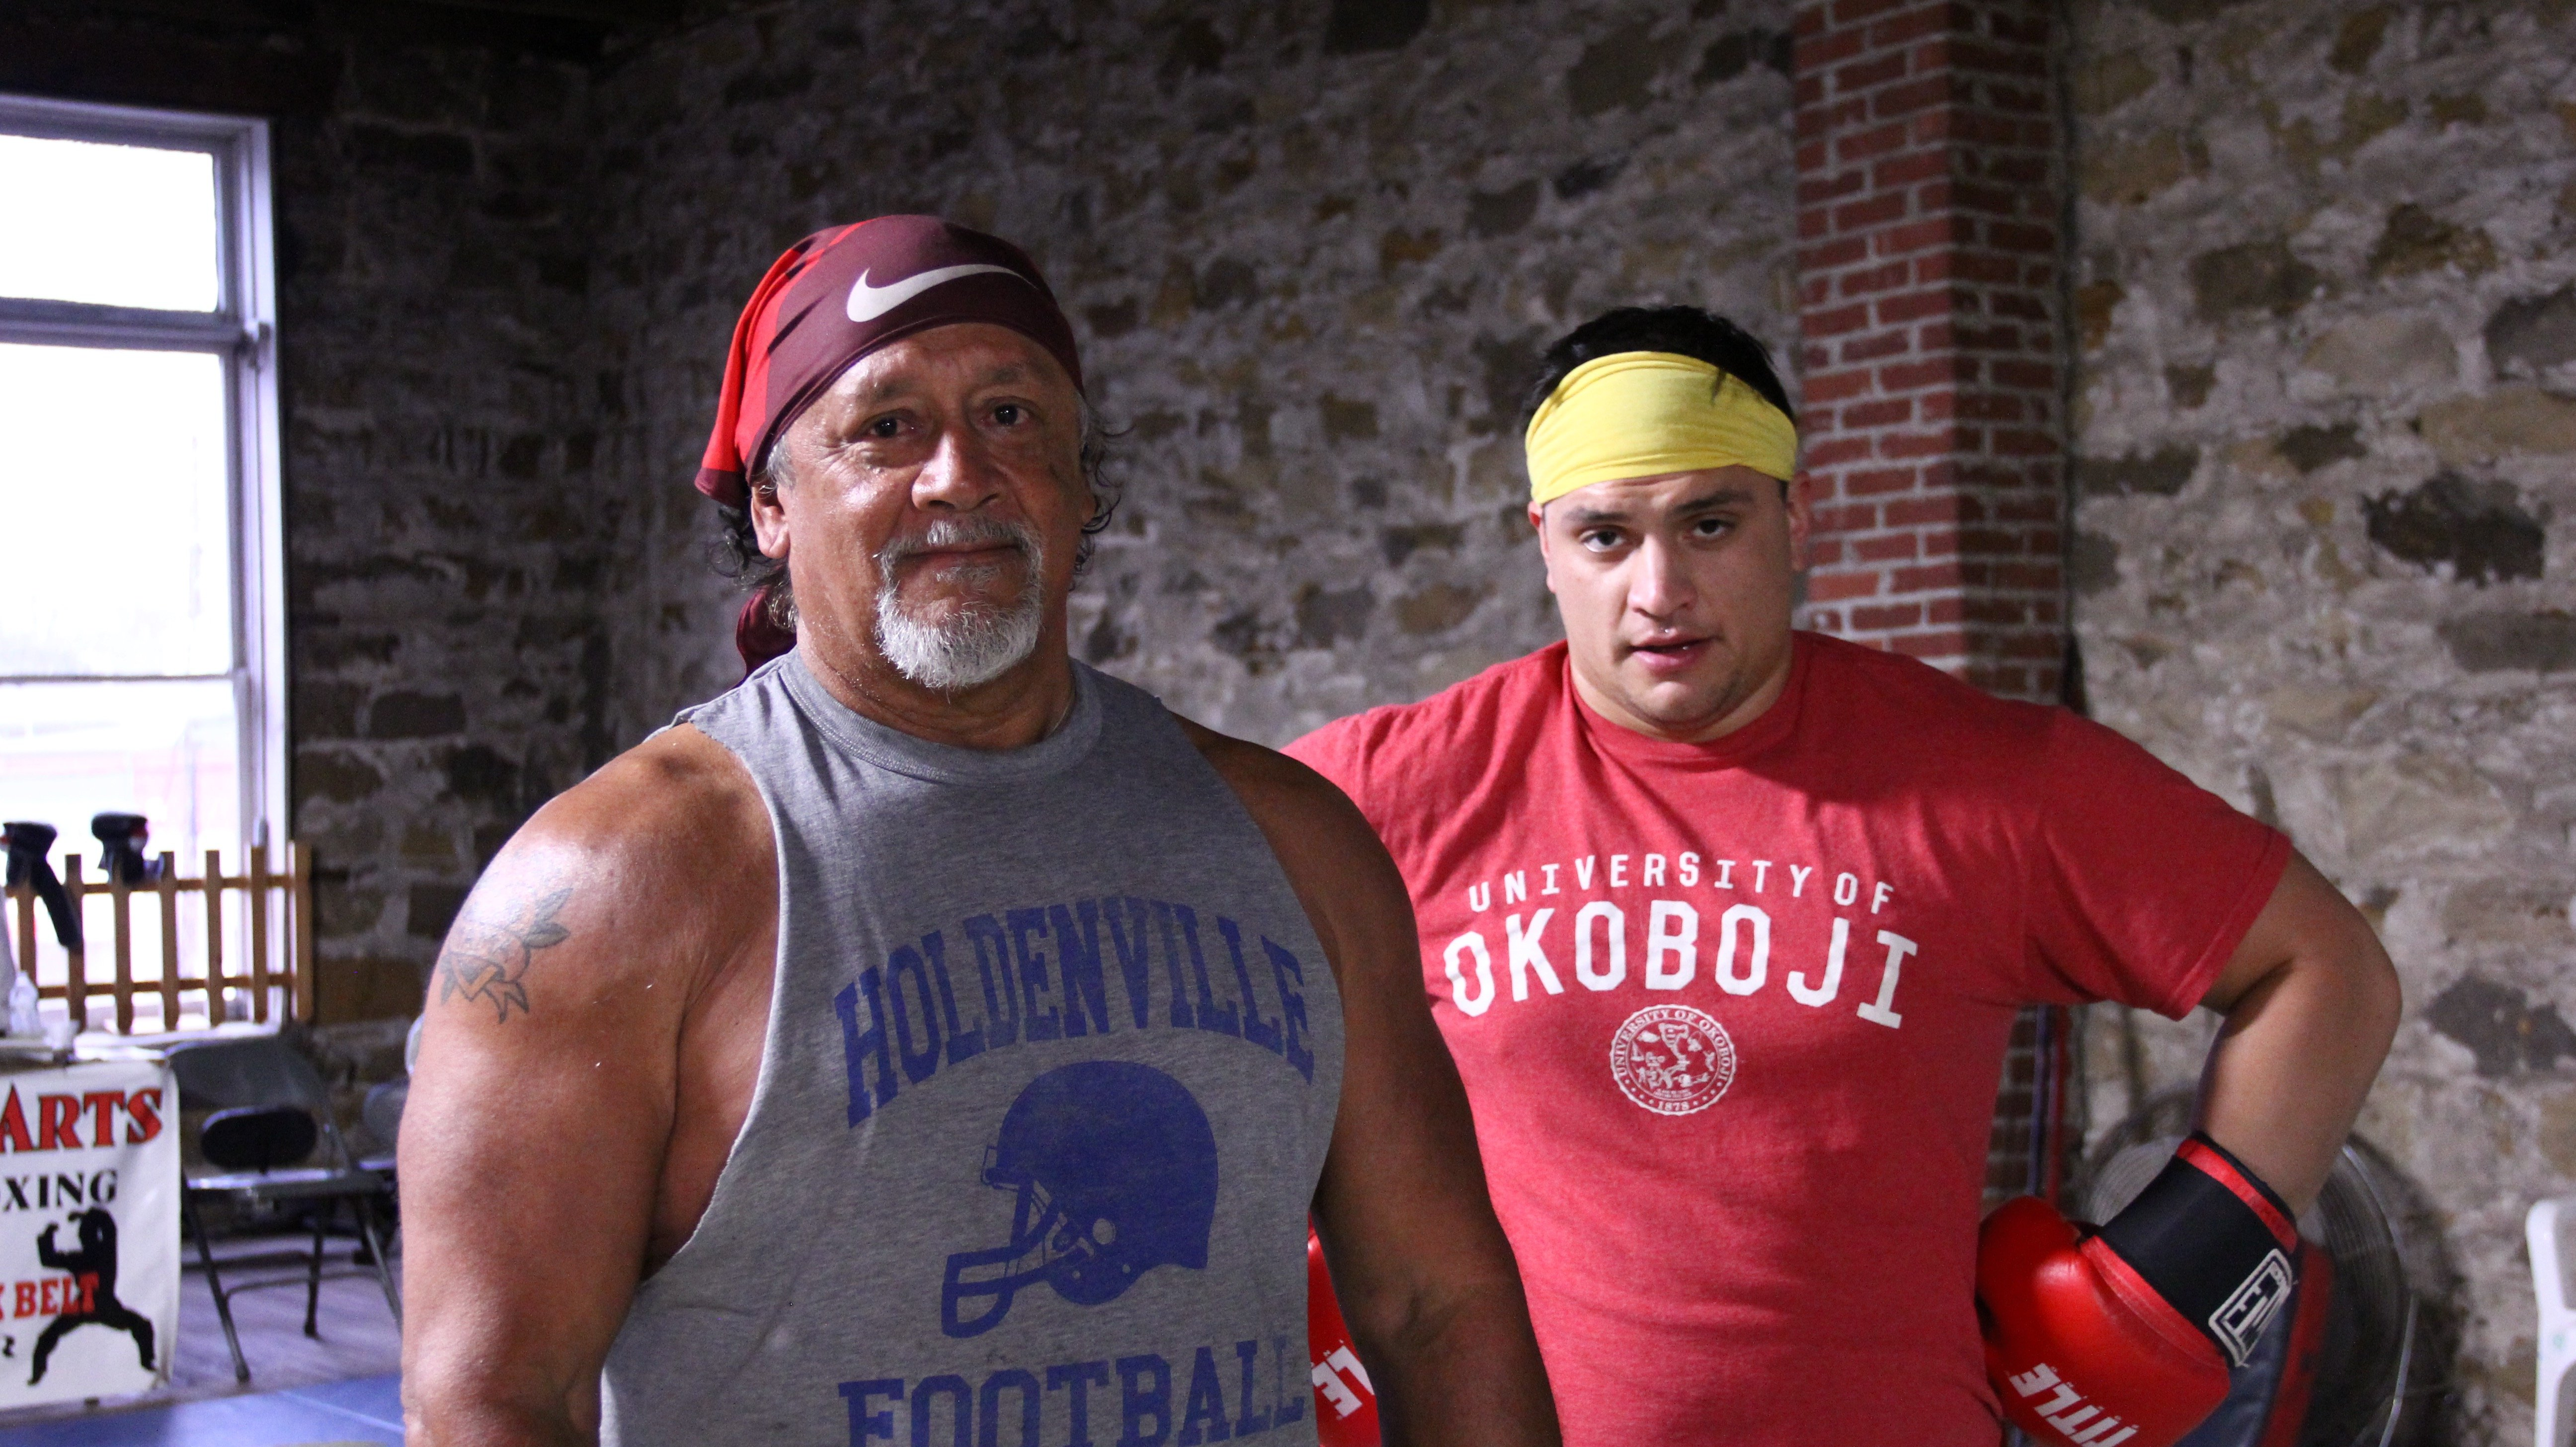 Brownie and his son Tre after practice. Tre said he'd like to one day help run the place with his dad.